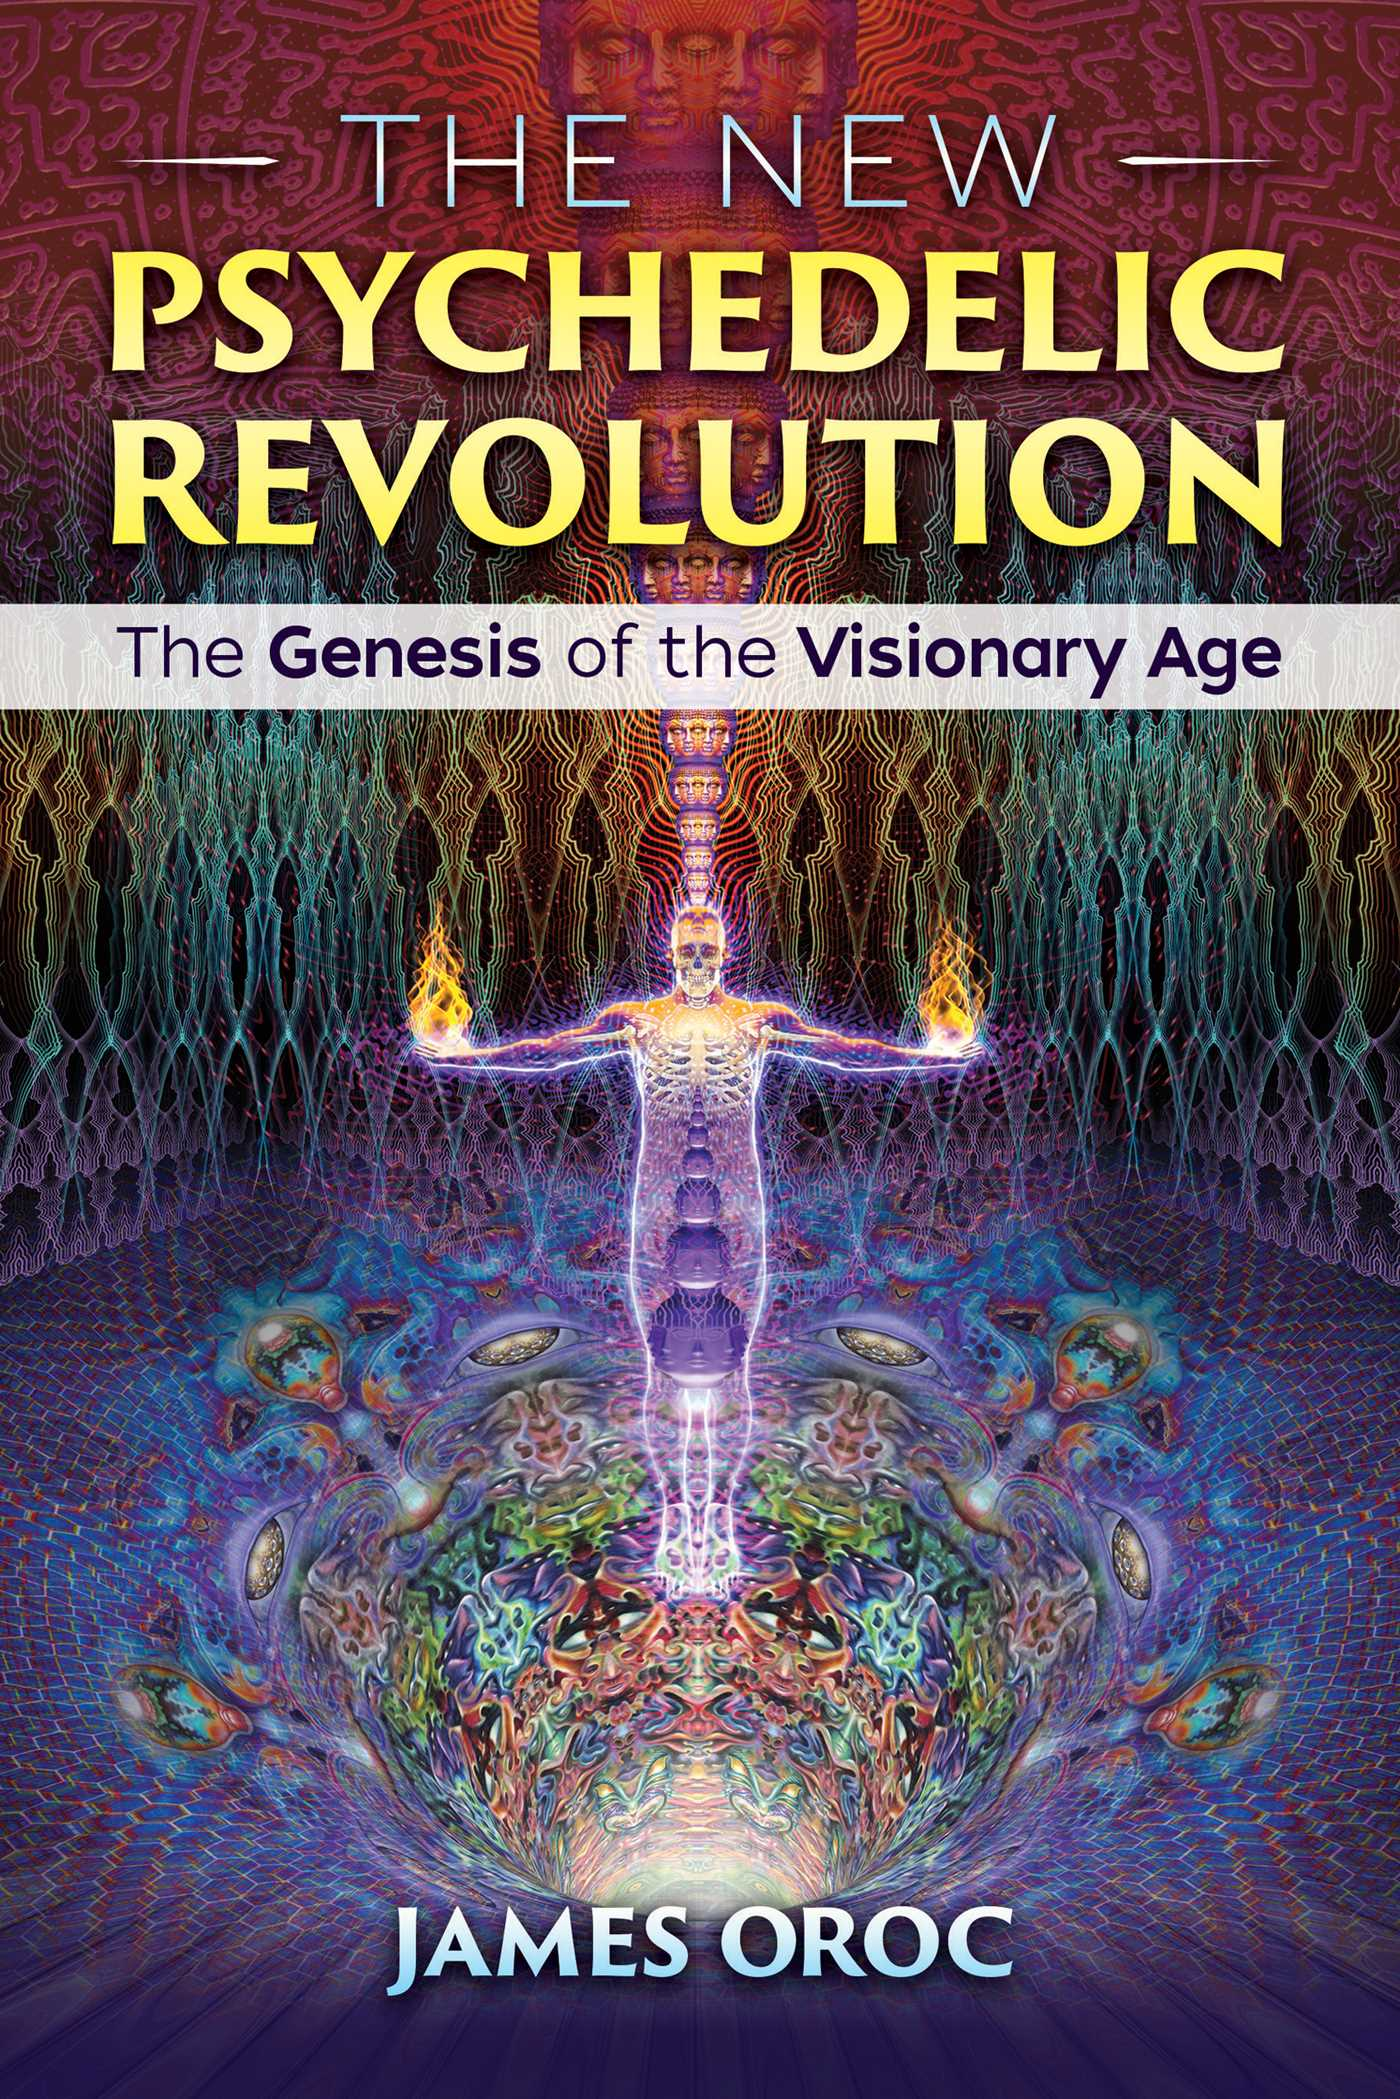 The new psychedelic revolution 9781620556634 hr